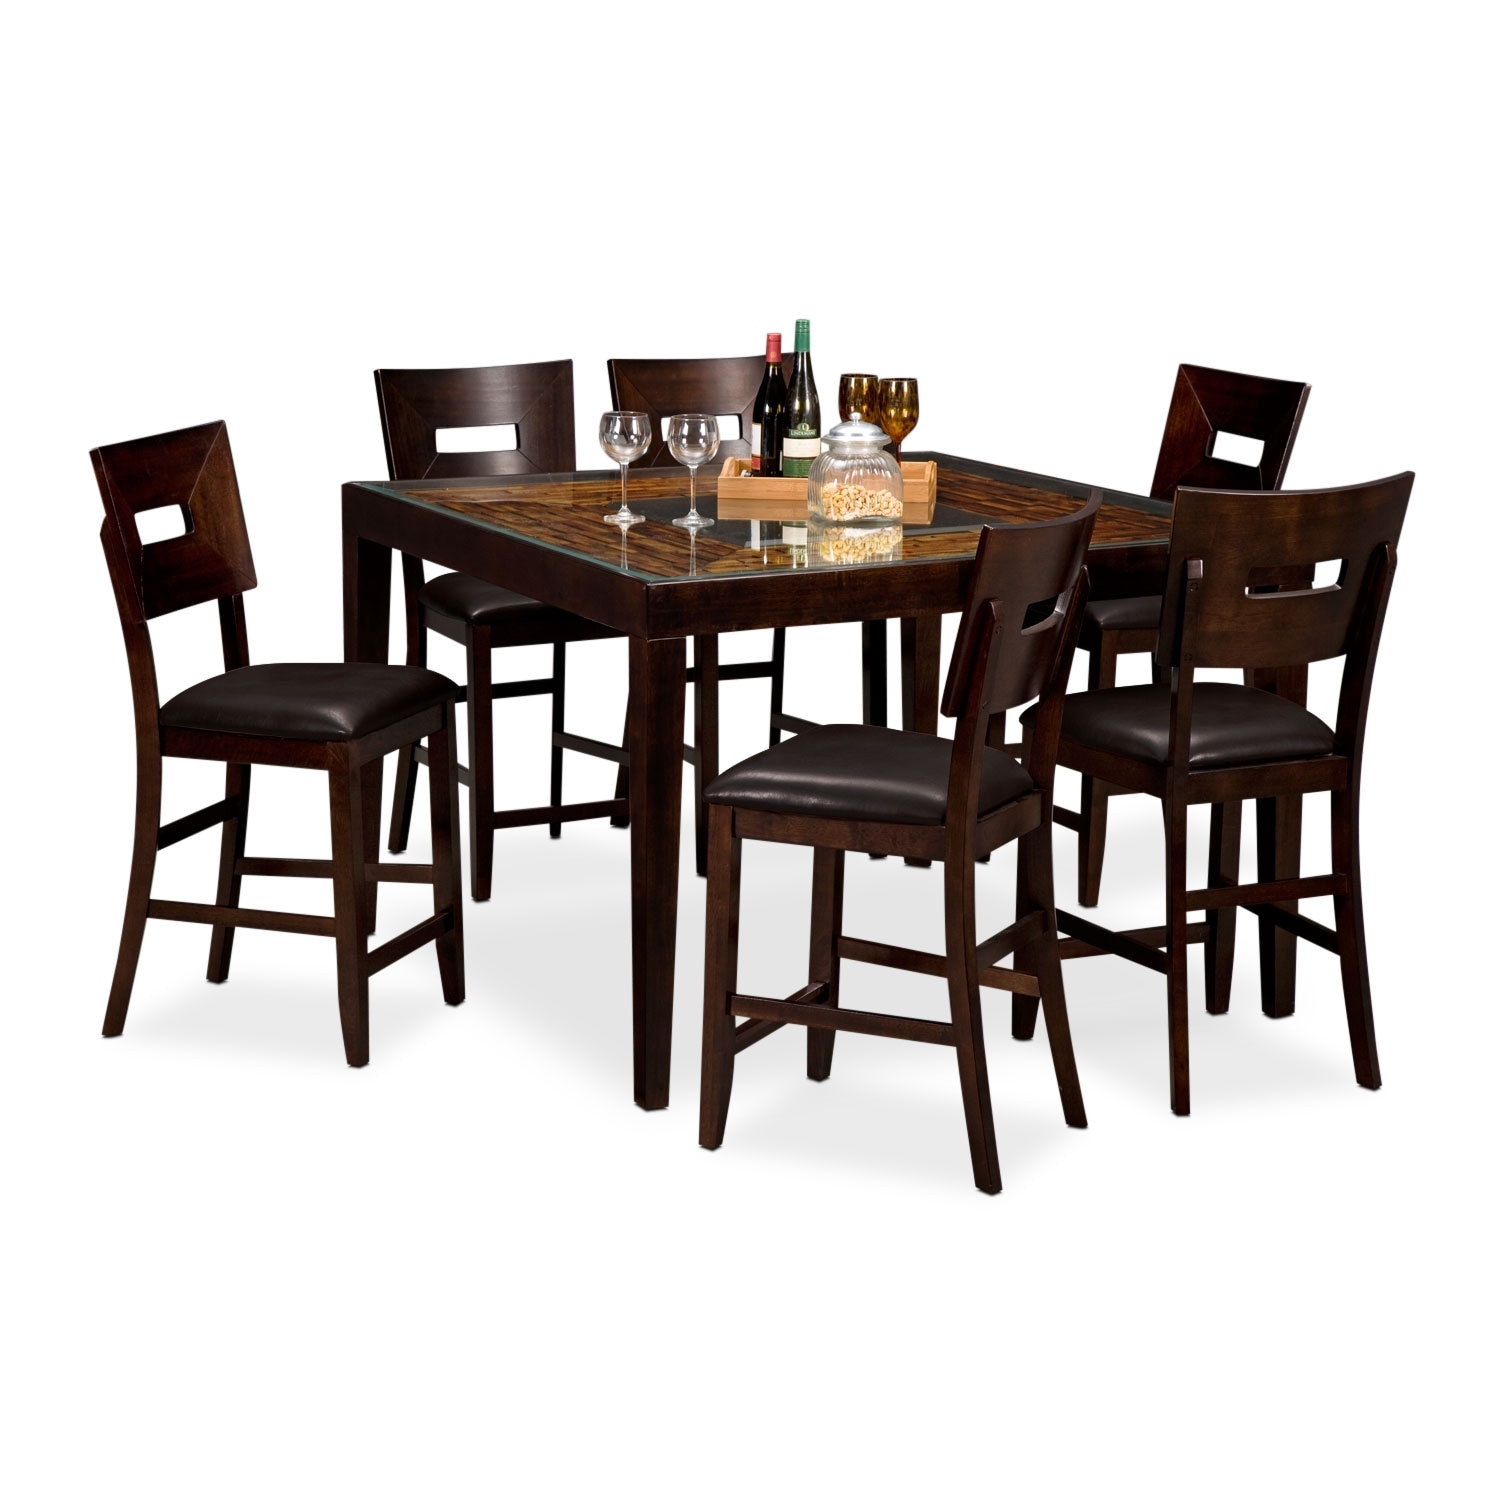 Dining Room Furniture - Cyprus II 7 Pc. Counter-Height Dinette